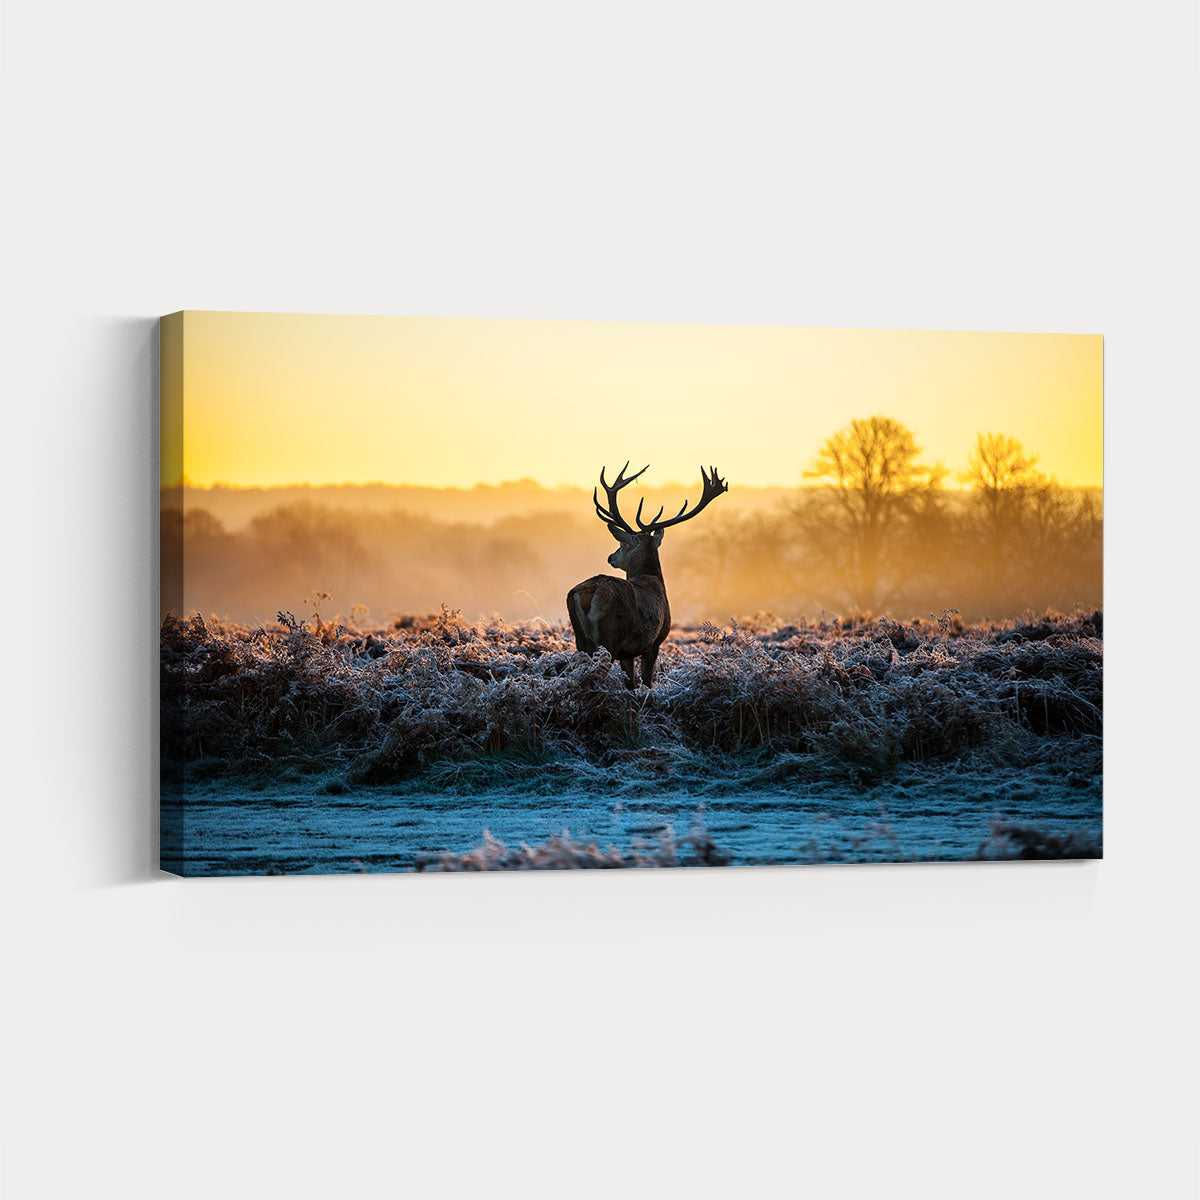 Lively deer Framed Wall Art 010